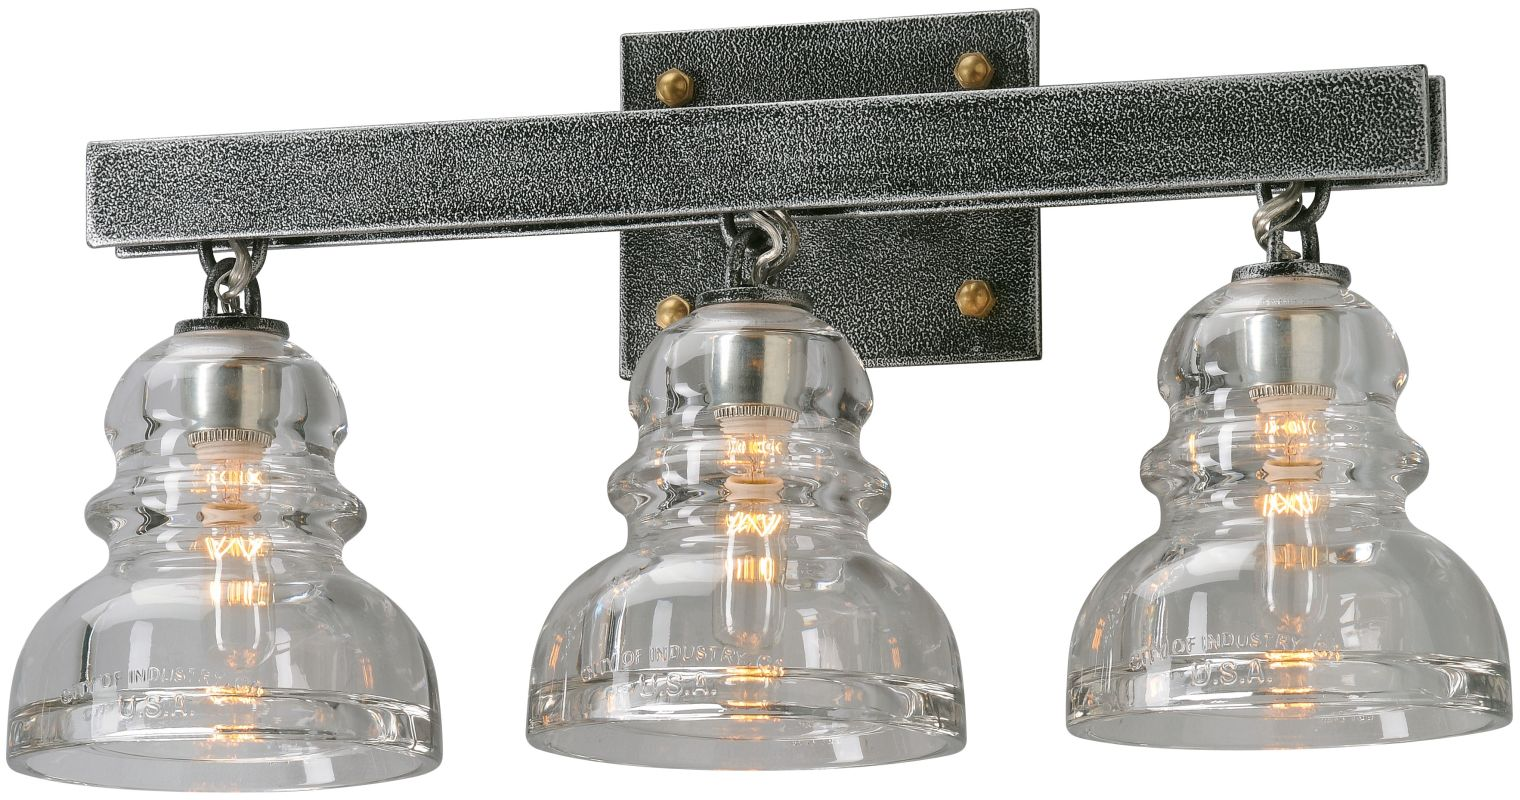 Troy Lighting B3953 Old Silver Menlo Park 3 Light Bathroom Vanity Light with Glass Insulator ...